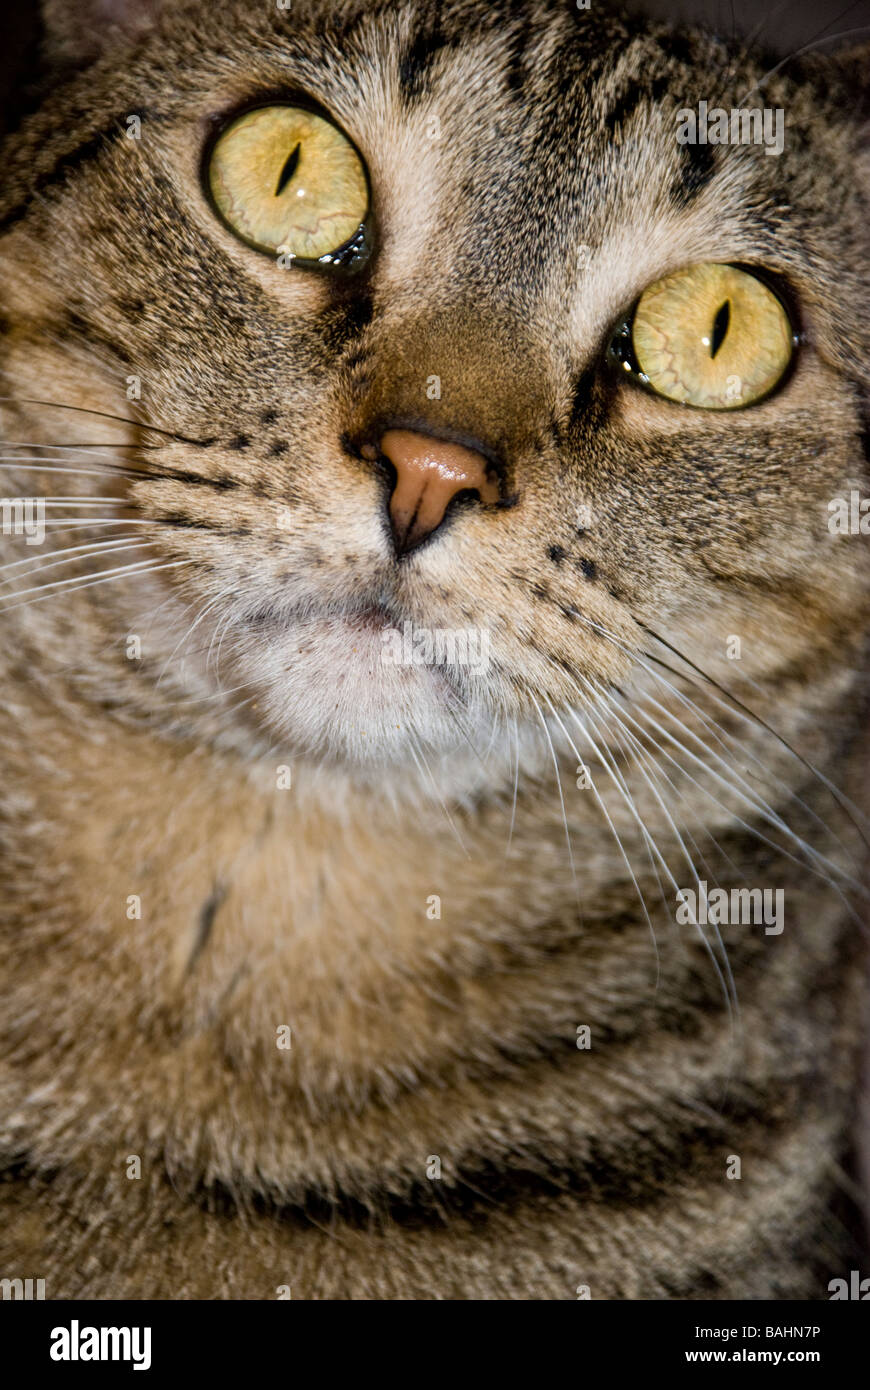 domestic-tabby-cat-BAHN7P.jpg